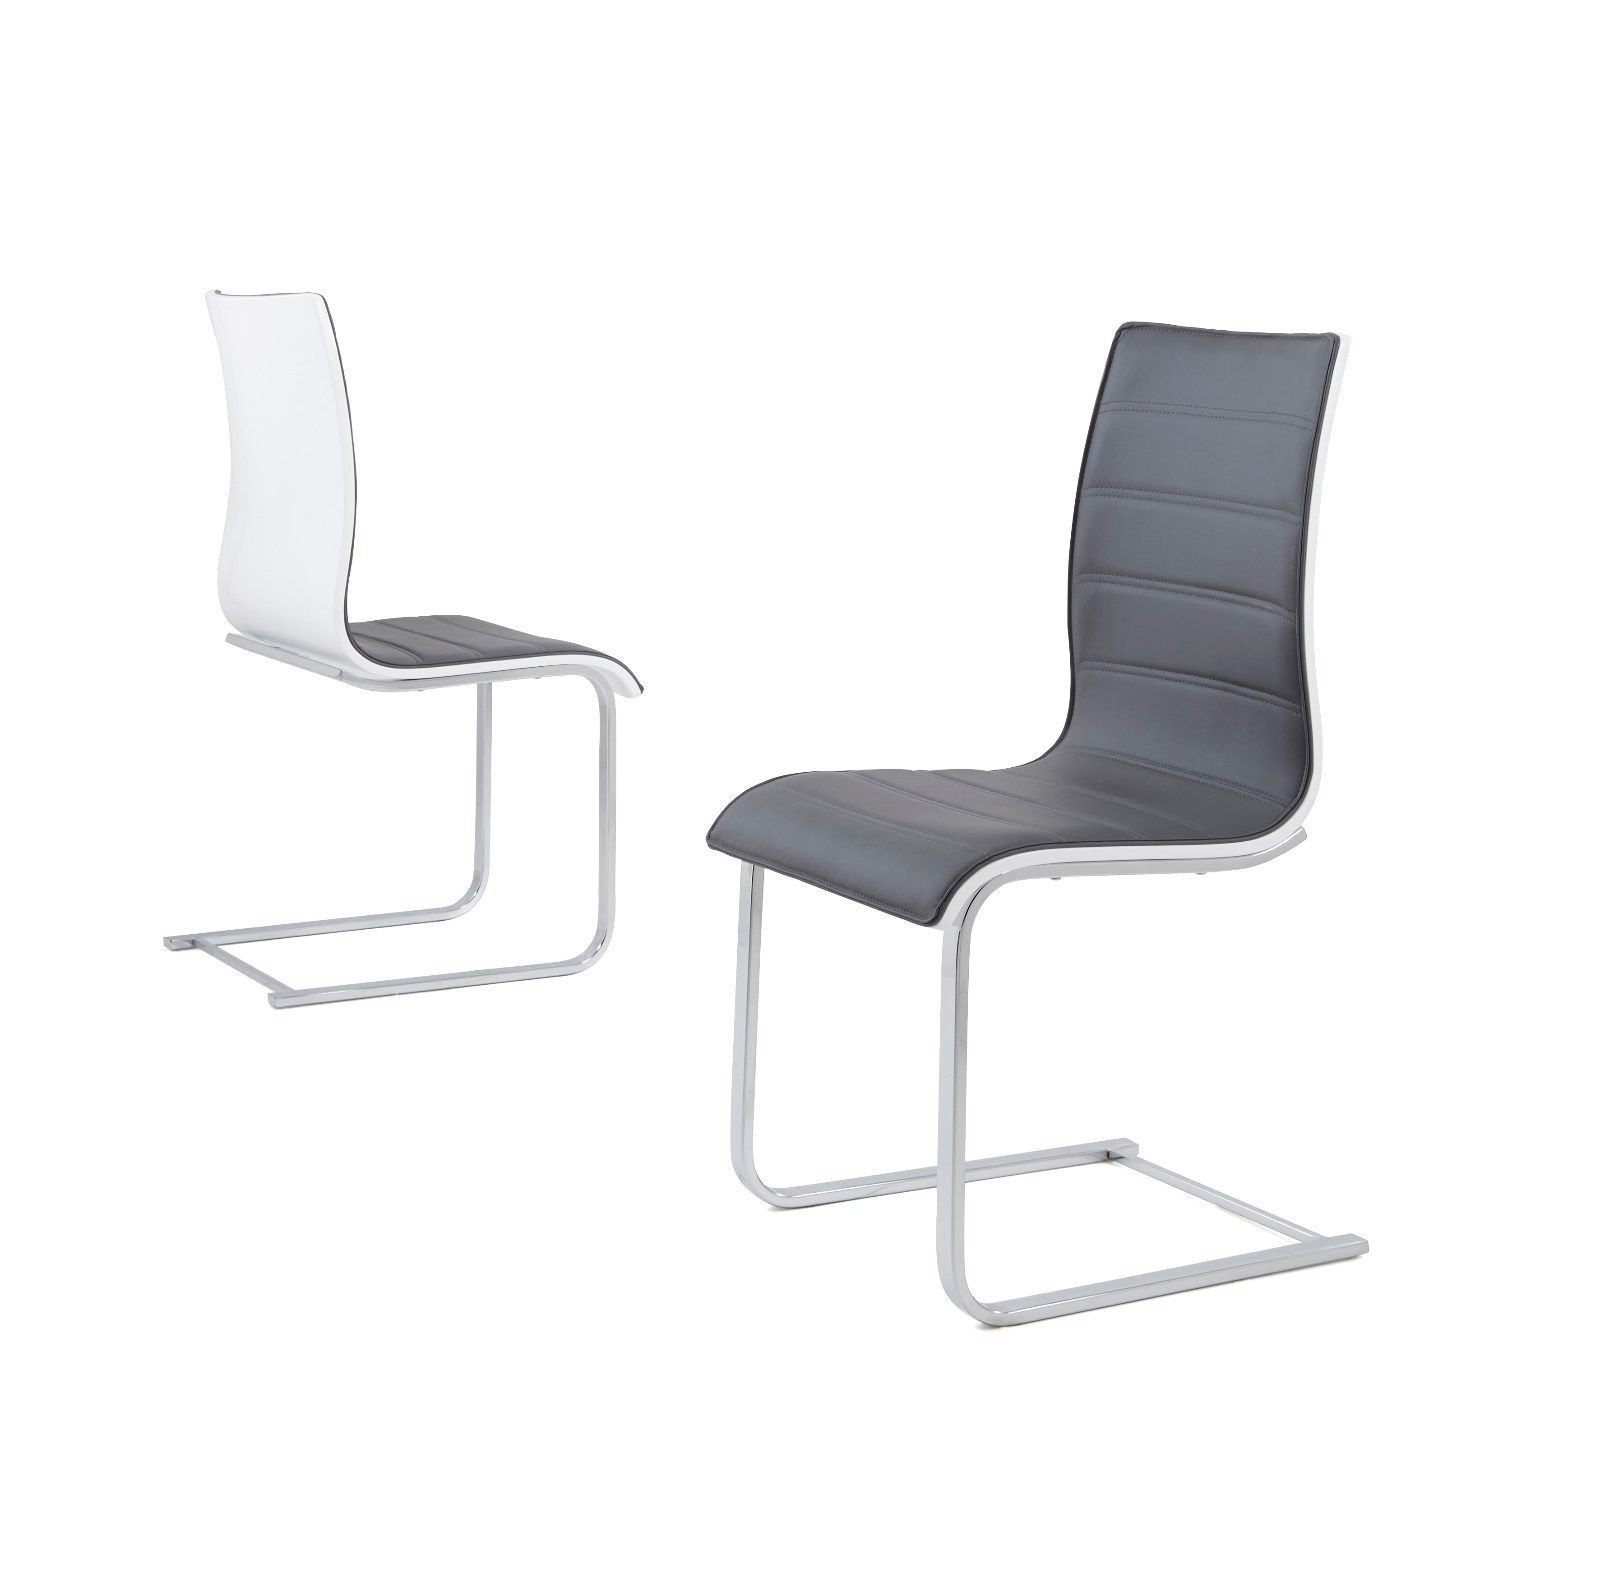 Wynn High Gloss Back Dining Chairs Only – Grey & White In Most Recent High Gloss White Dining Chairs (View 25 of 25)